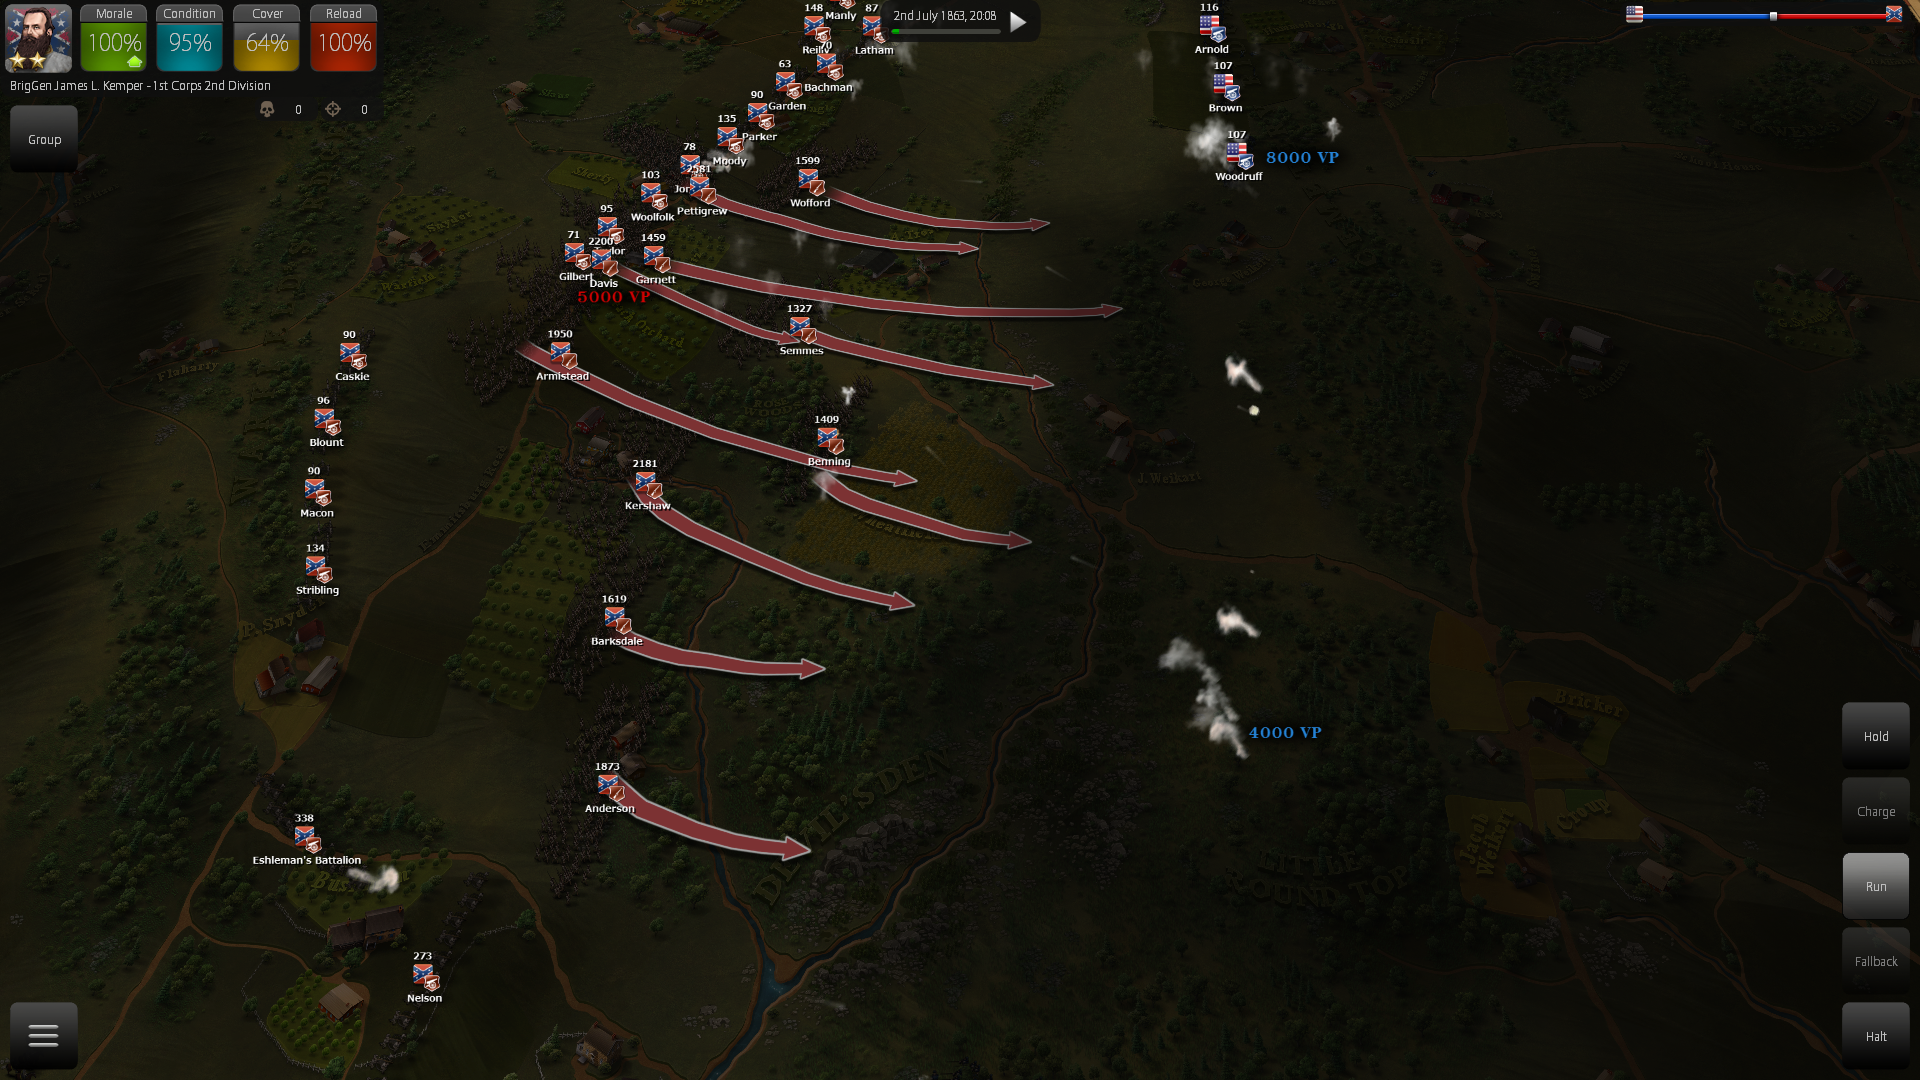 """The """"Night battle on the Round Tops"""" map has the two armies facing each other at devil's den area."""